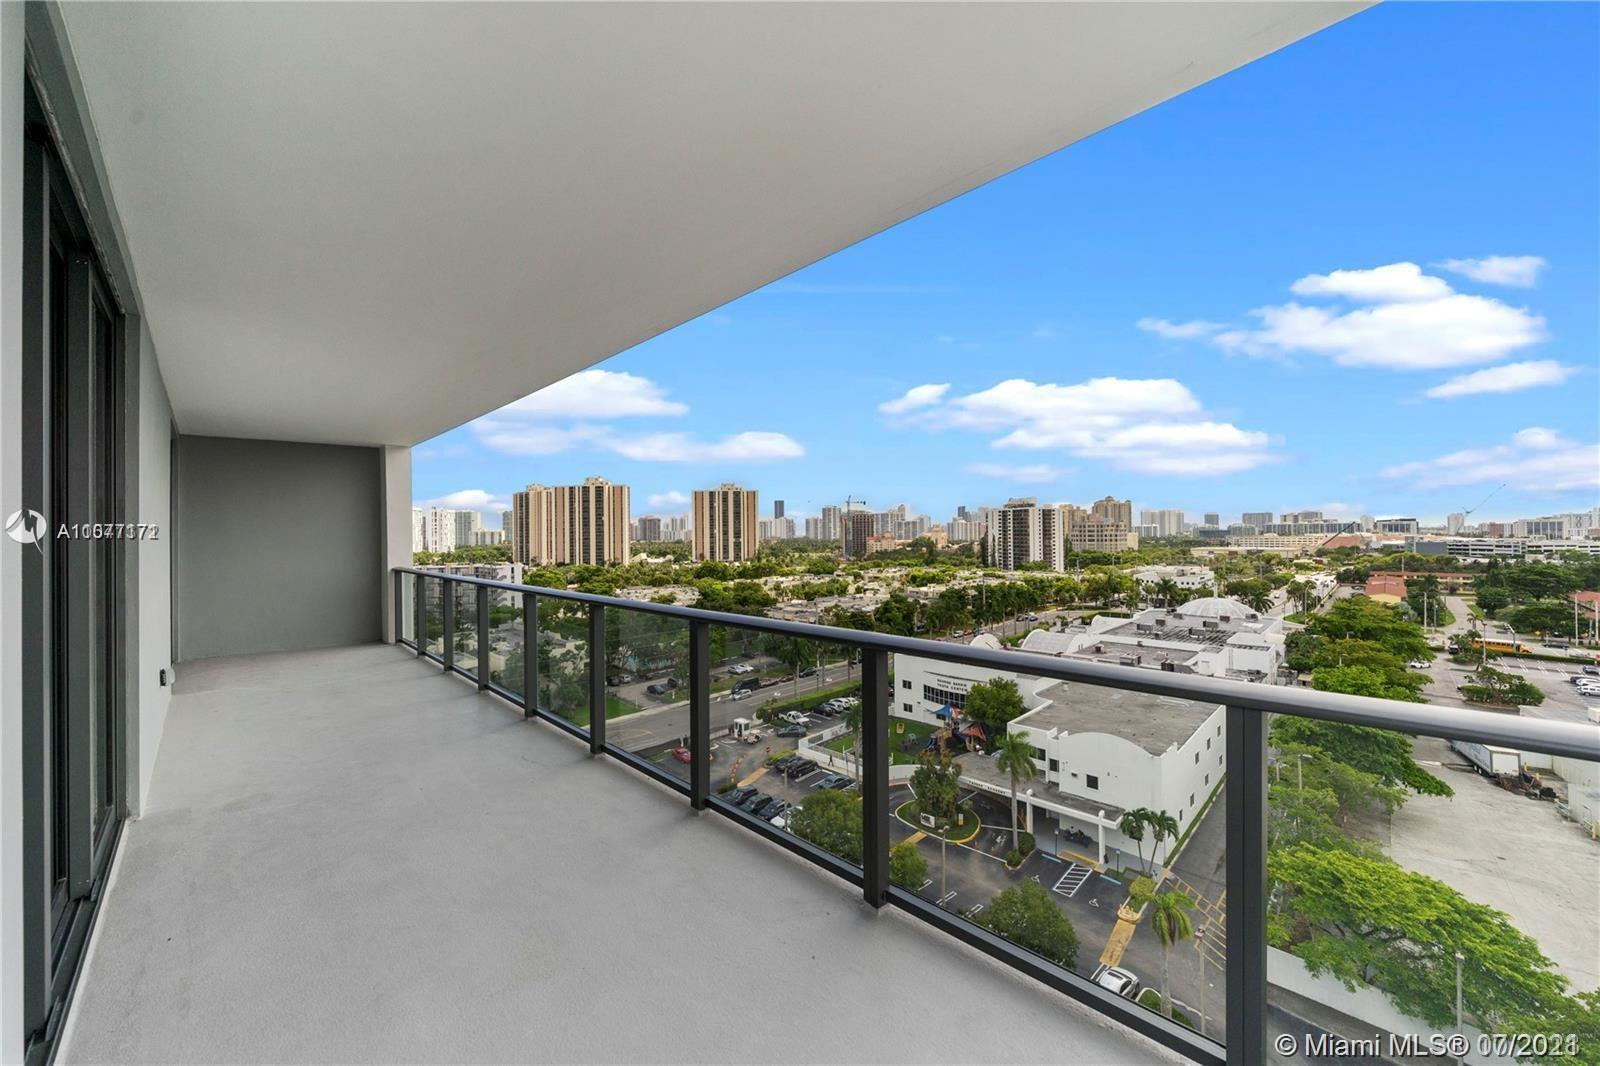 CORNER UNITS WITH LARGE WRAP TERRACE  1 BED PLUS DEN WITH WINDOW WITH  TERRACE ACCESS IN AVENTURA PA